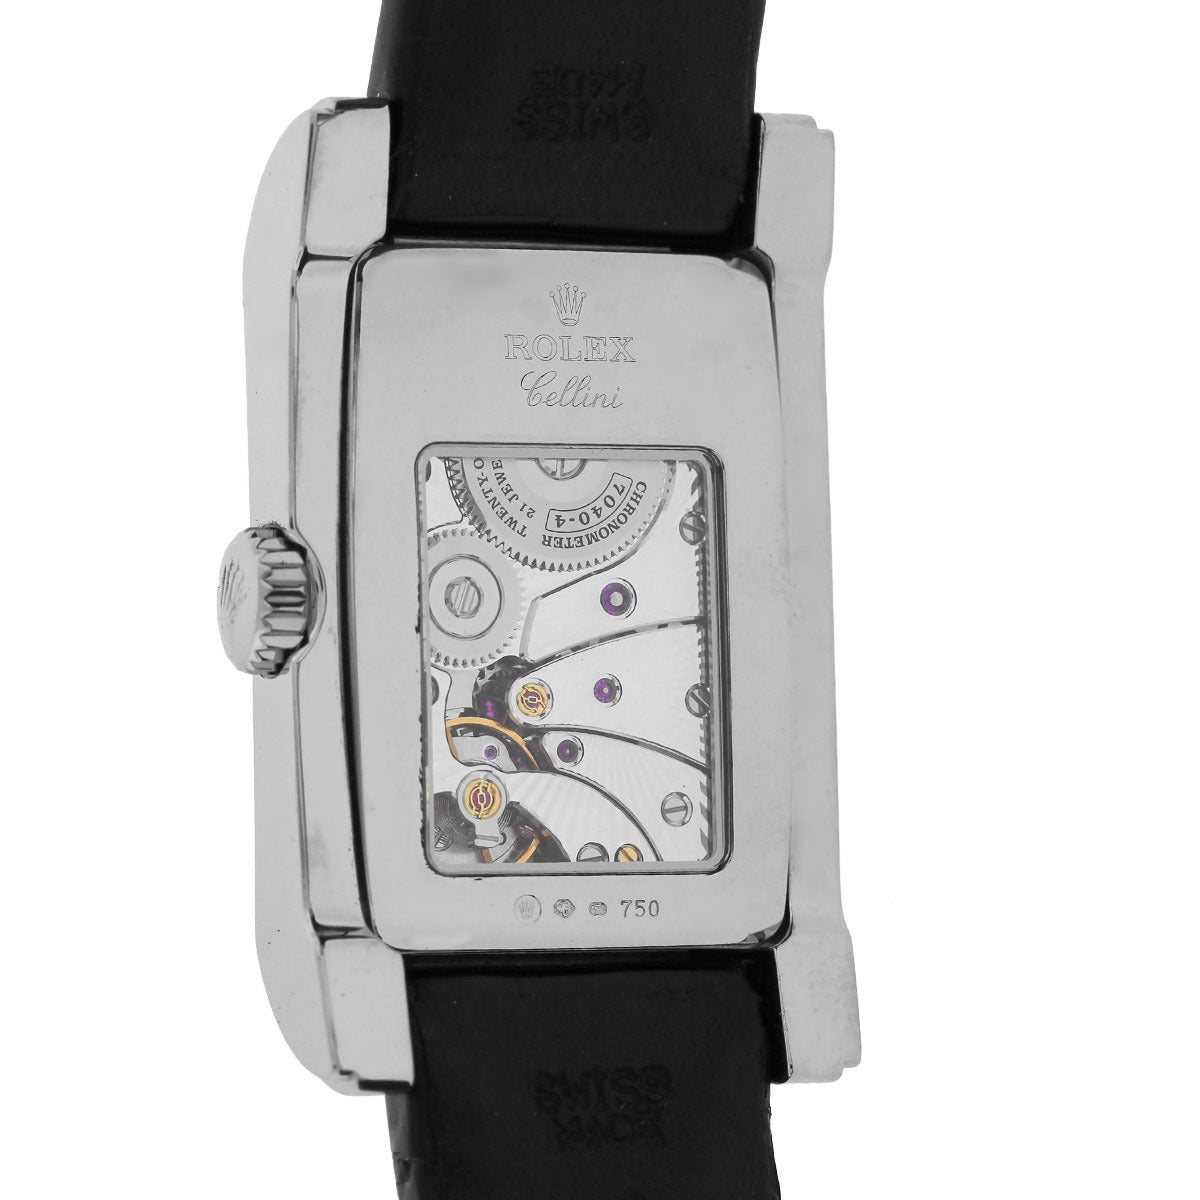 Rolex White Gold Cellini Prince Automatic Wristwatch Ref 5443/9 For Sale 1